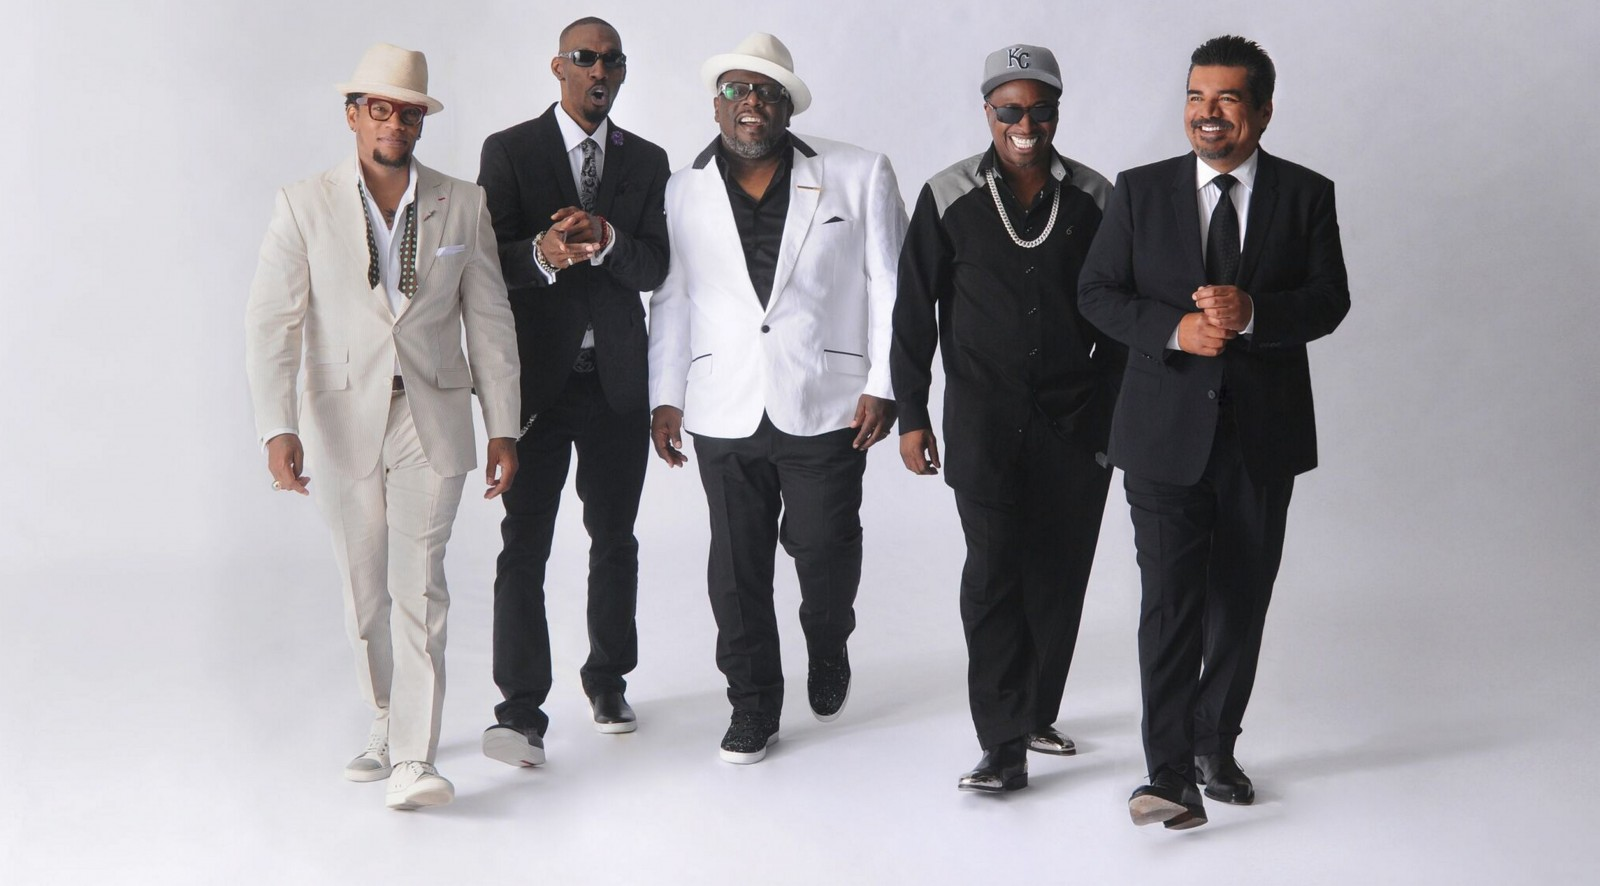 The Comedy Get Down tour features D.L. Hughley, left, Charlie Murphy, Cedric the Entertainer, Eddie Griffin and George Lopez.